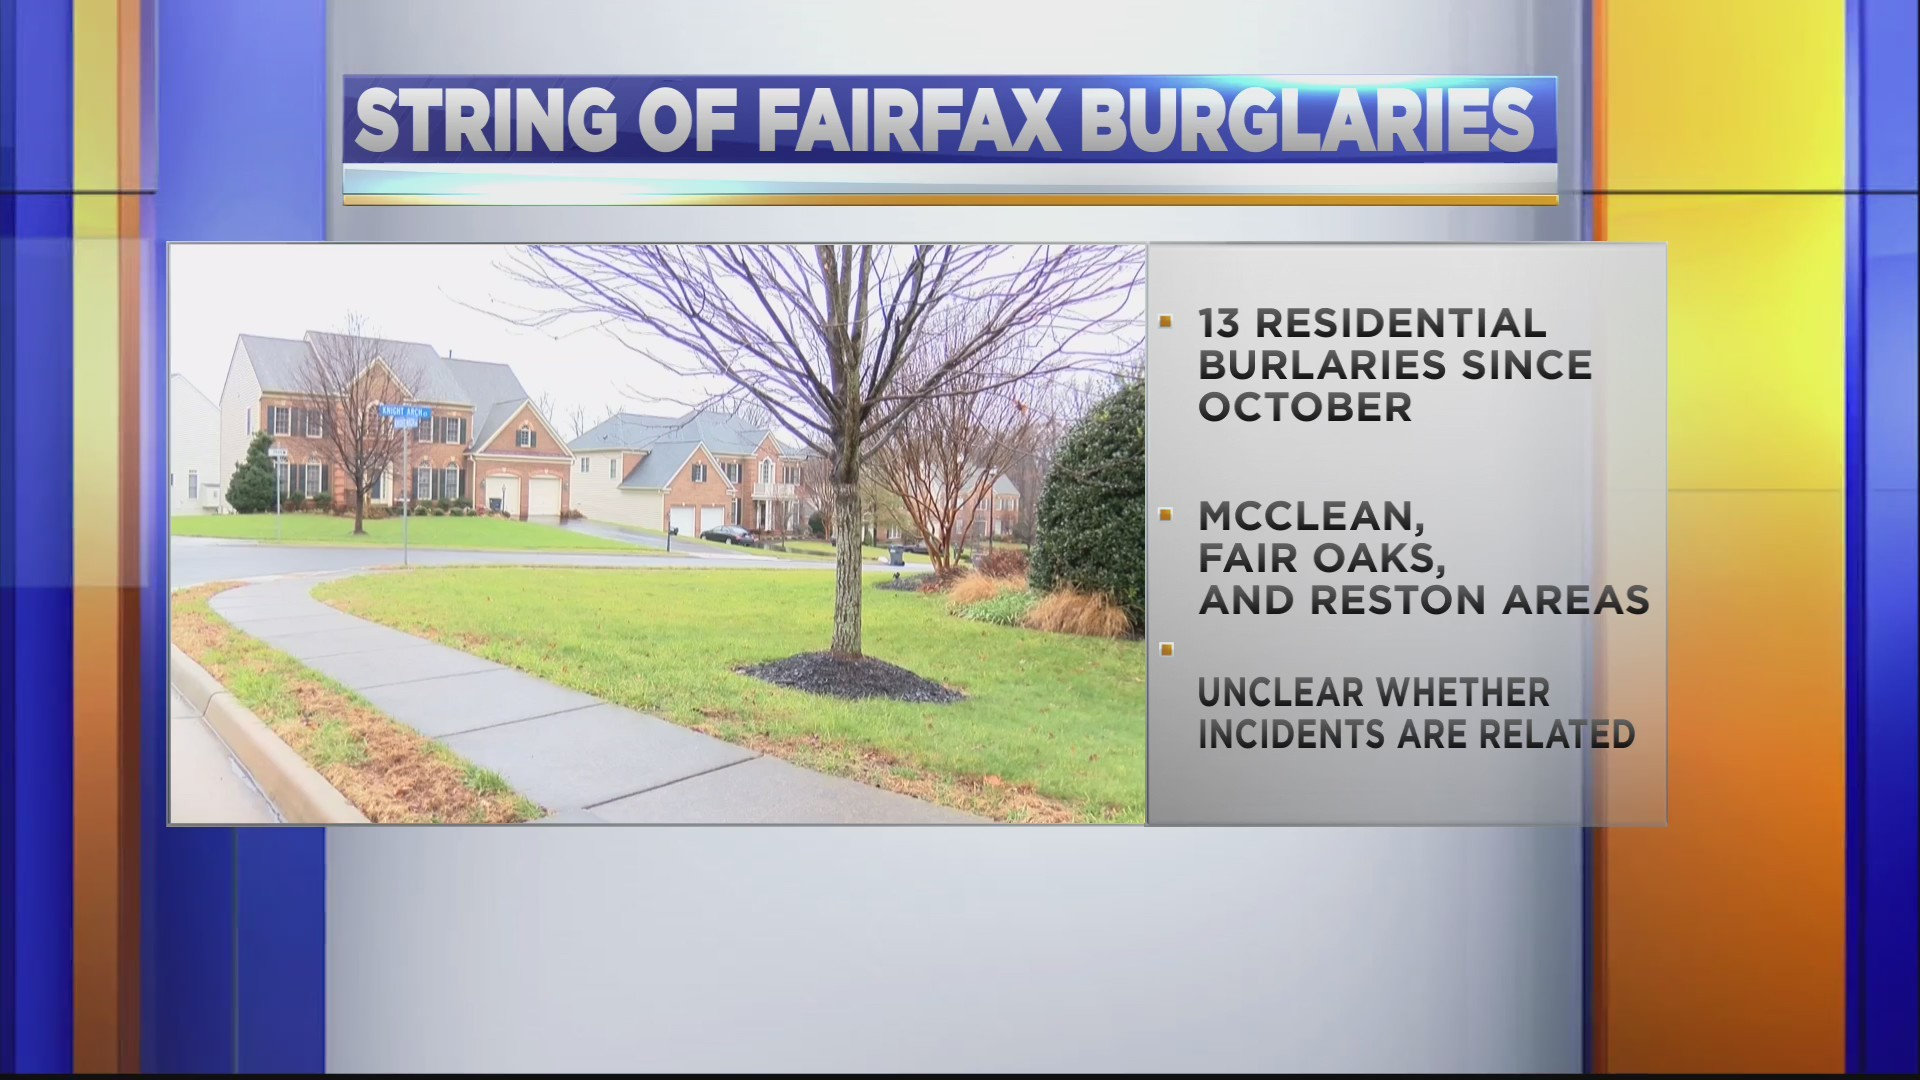 Fairfax_burglaries_0_20181228221906